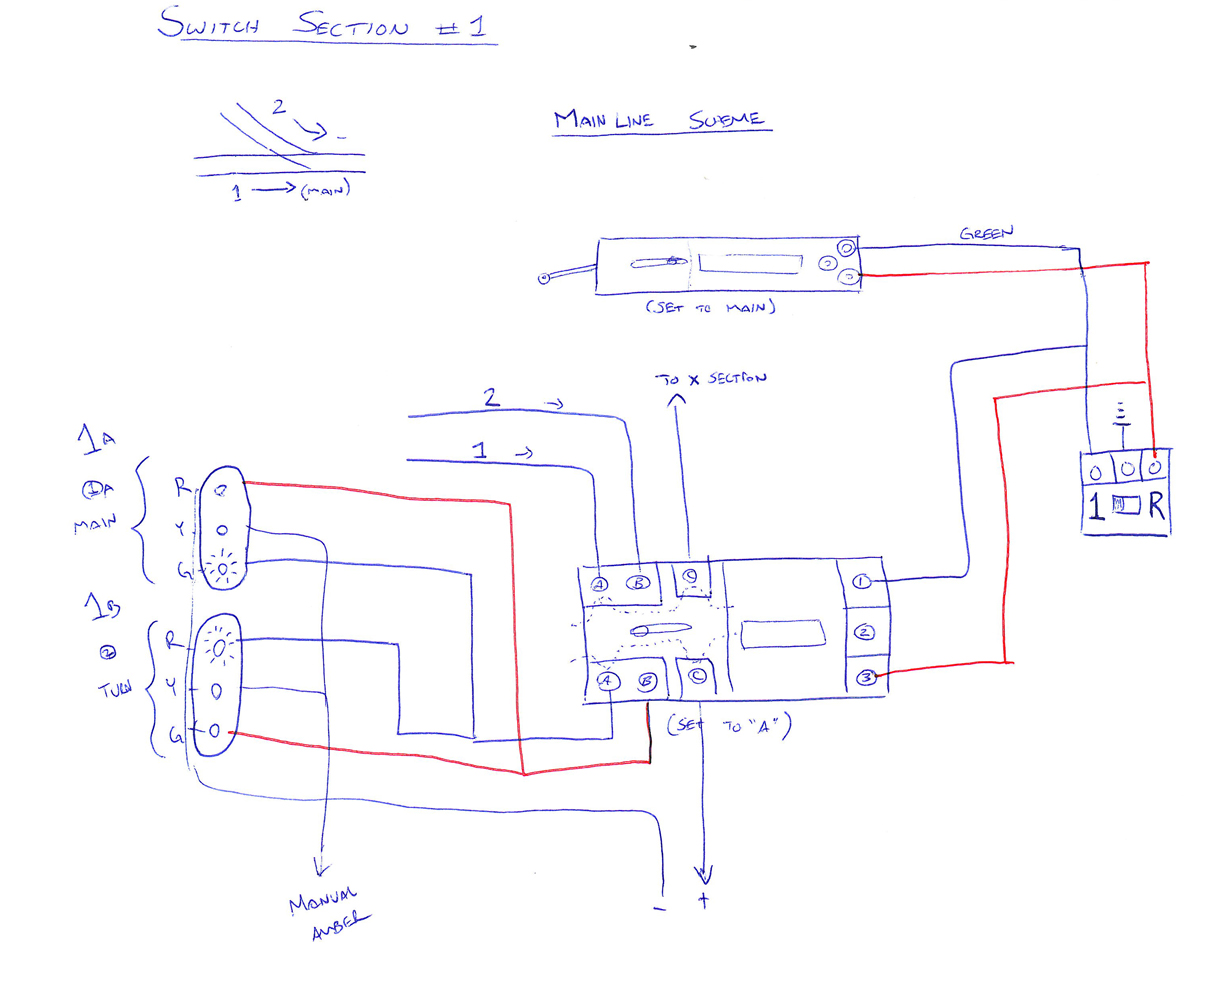 lb7 wiring diagram dash 05 duramax fuel system diagram lb7 engine rh banyan  palace com Wiring Atlas Lift Atlas Switch Wiring